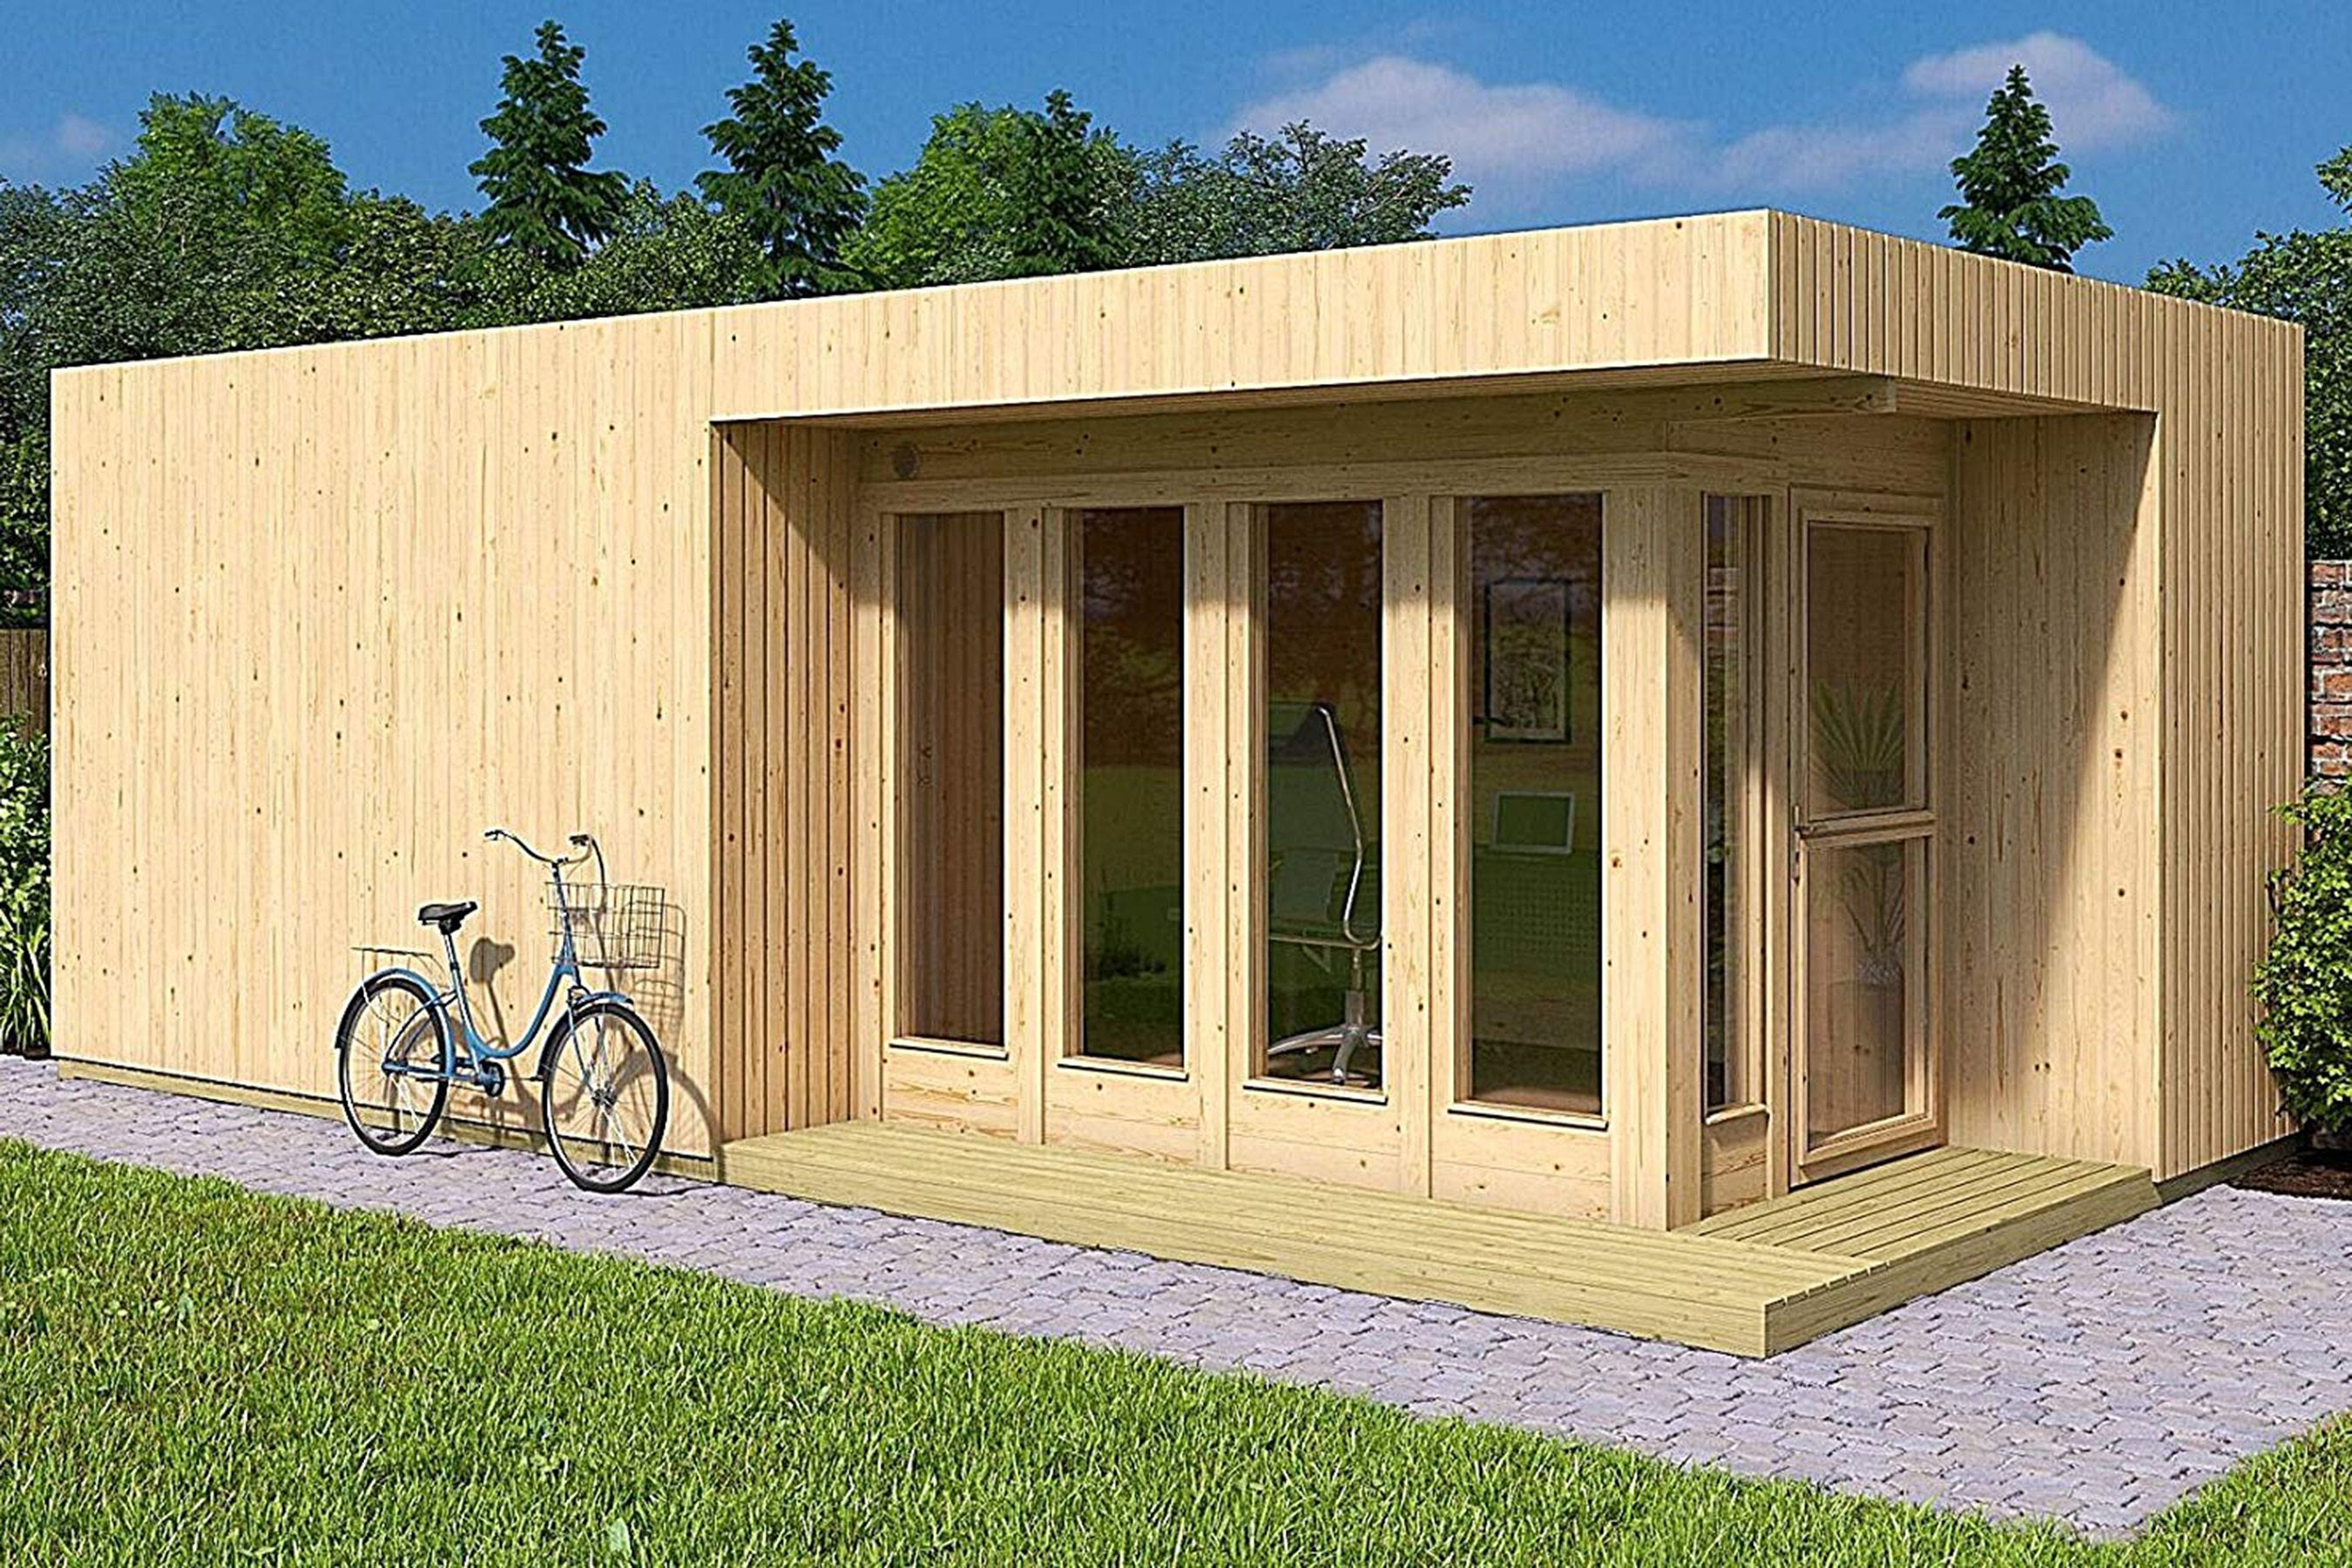 Yes You Can Buy A Tiny House On Amazon For 3 000 Here